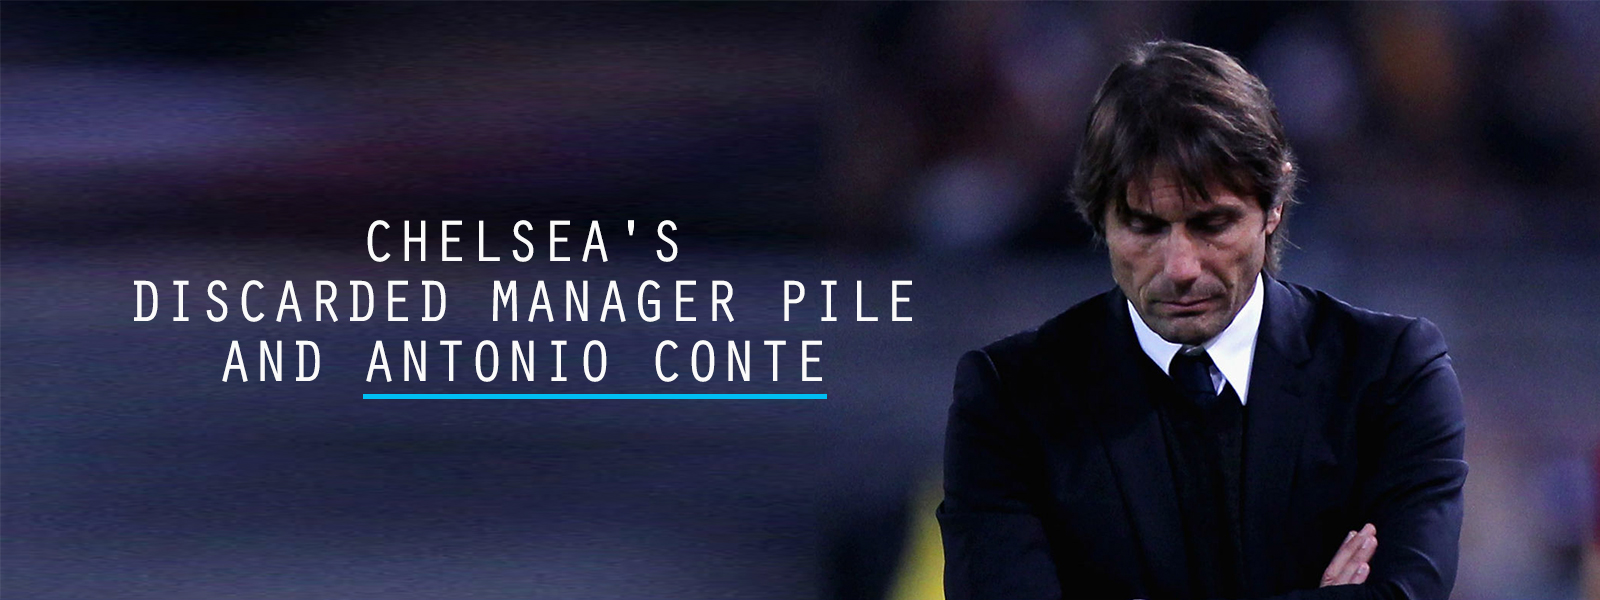 Chelsea Discarded Manager Pile And Antonio Conte